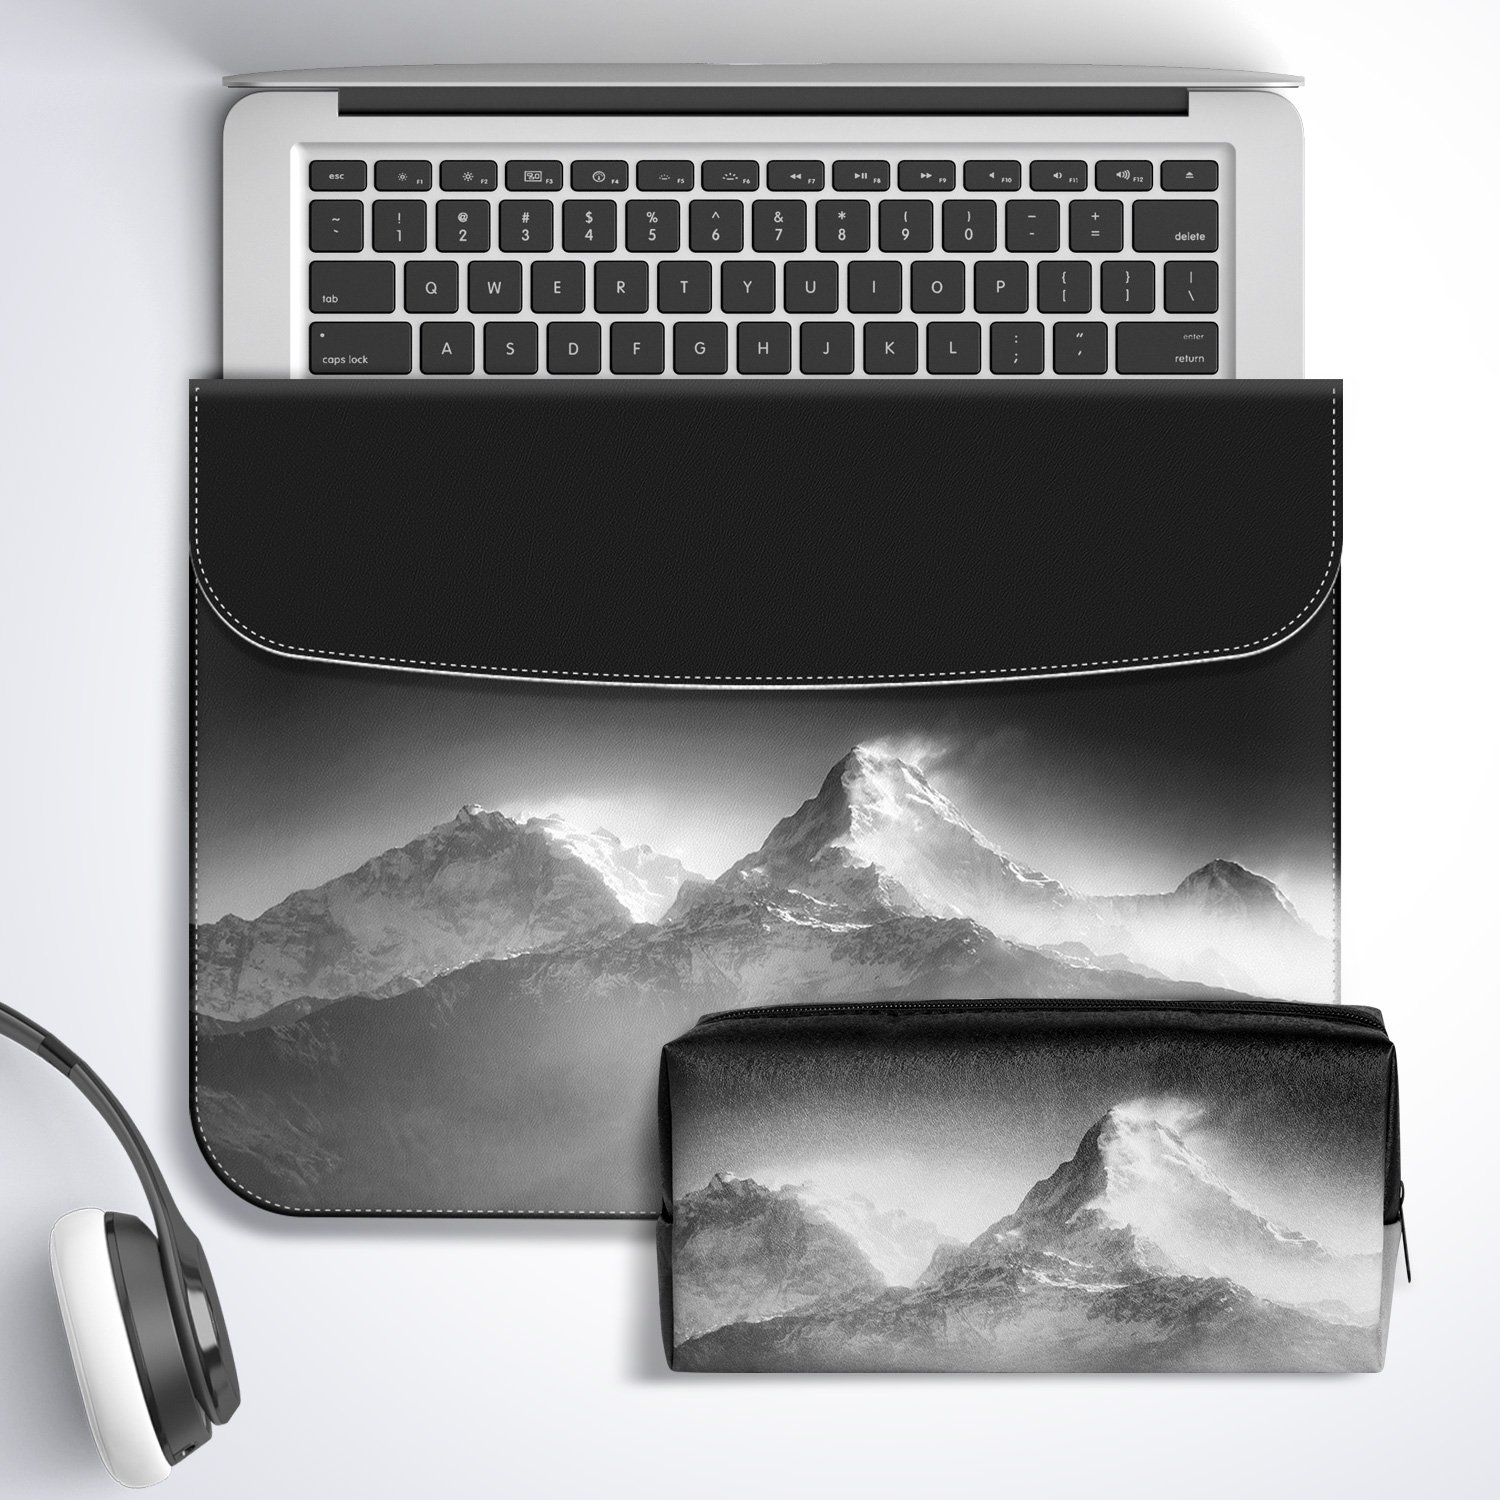 A1534 with Retina Display 2015 Release Ayotu Macbook 12 inch Colorful Sleeve Case,Durable Microfiber PU Synthetic Leather Sleeve Case Cover Bag for The New Macbook 12 inch ,The Marble Pattern